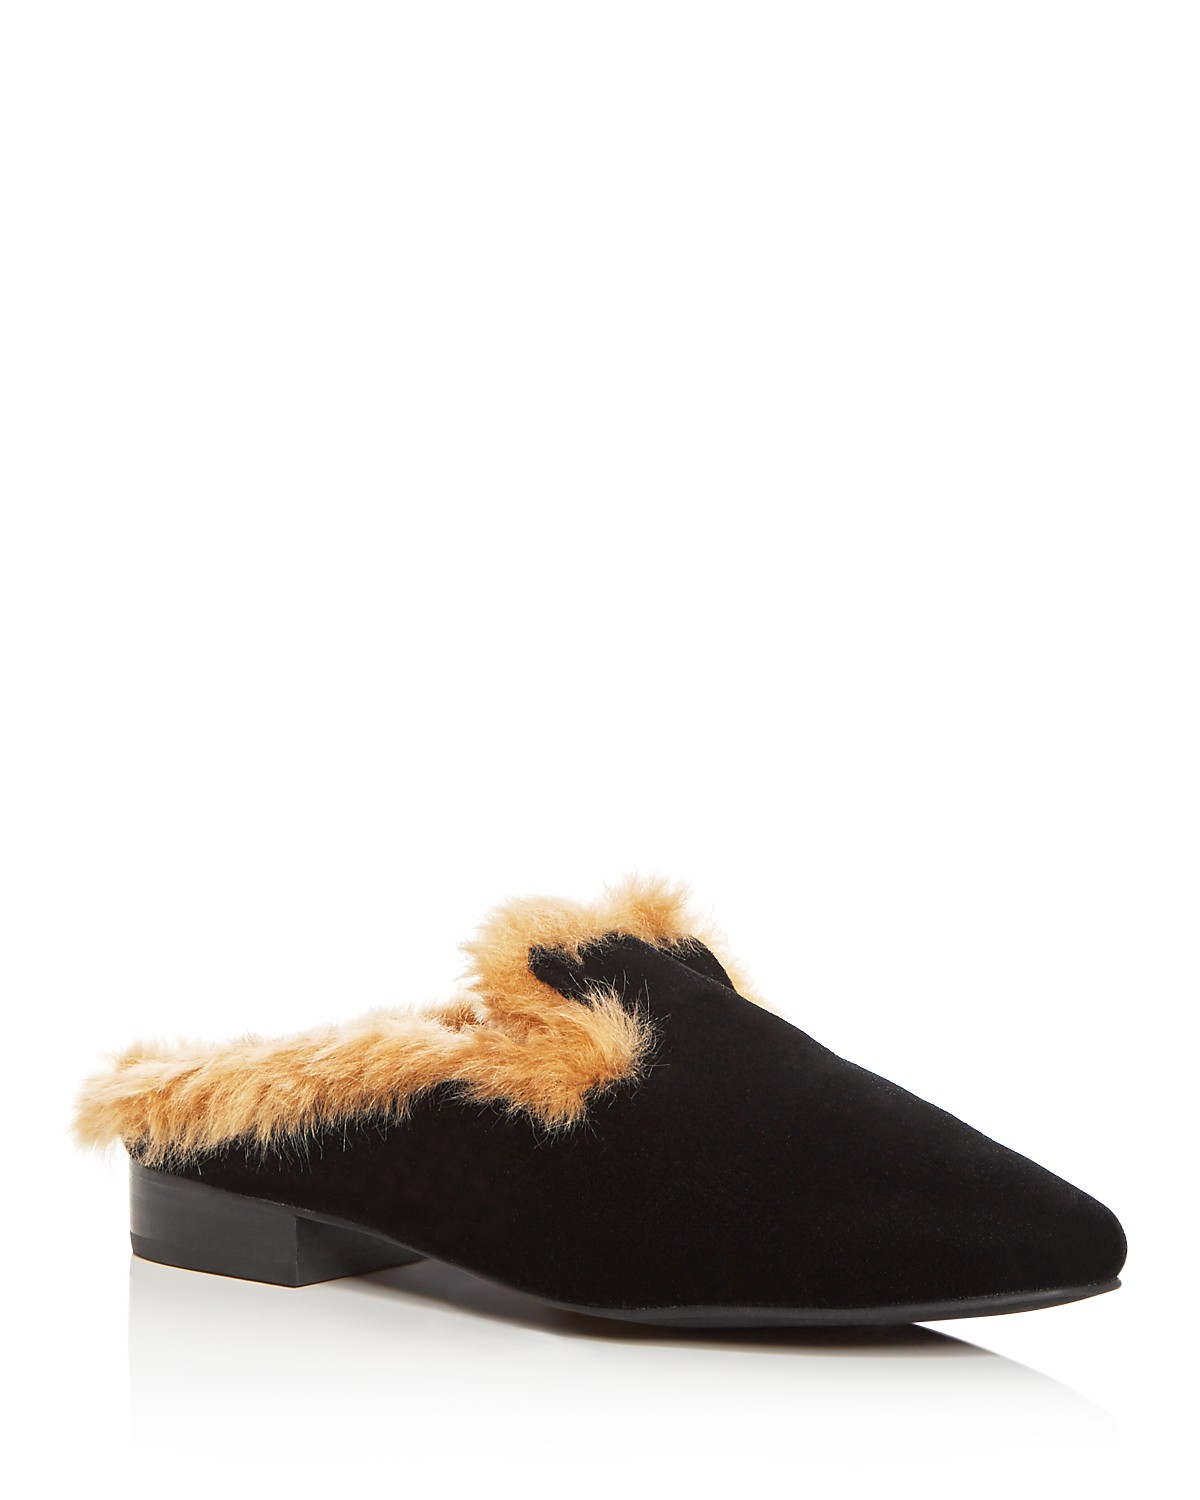 Newest Online Cheap Price For Sale Sol Sana Women's Rocco Velvet & Faux-Fur Loafer Mules Brand New Unisex Sale Online AIqUw